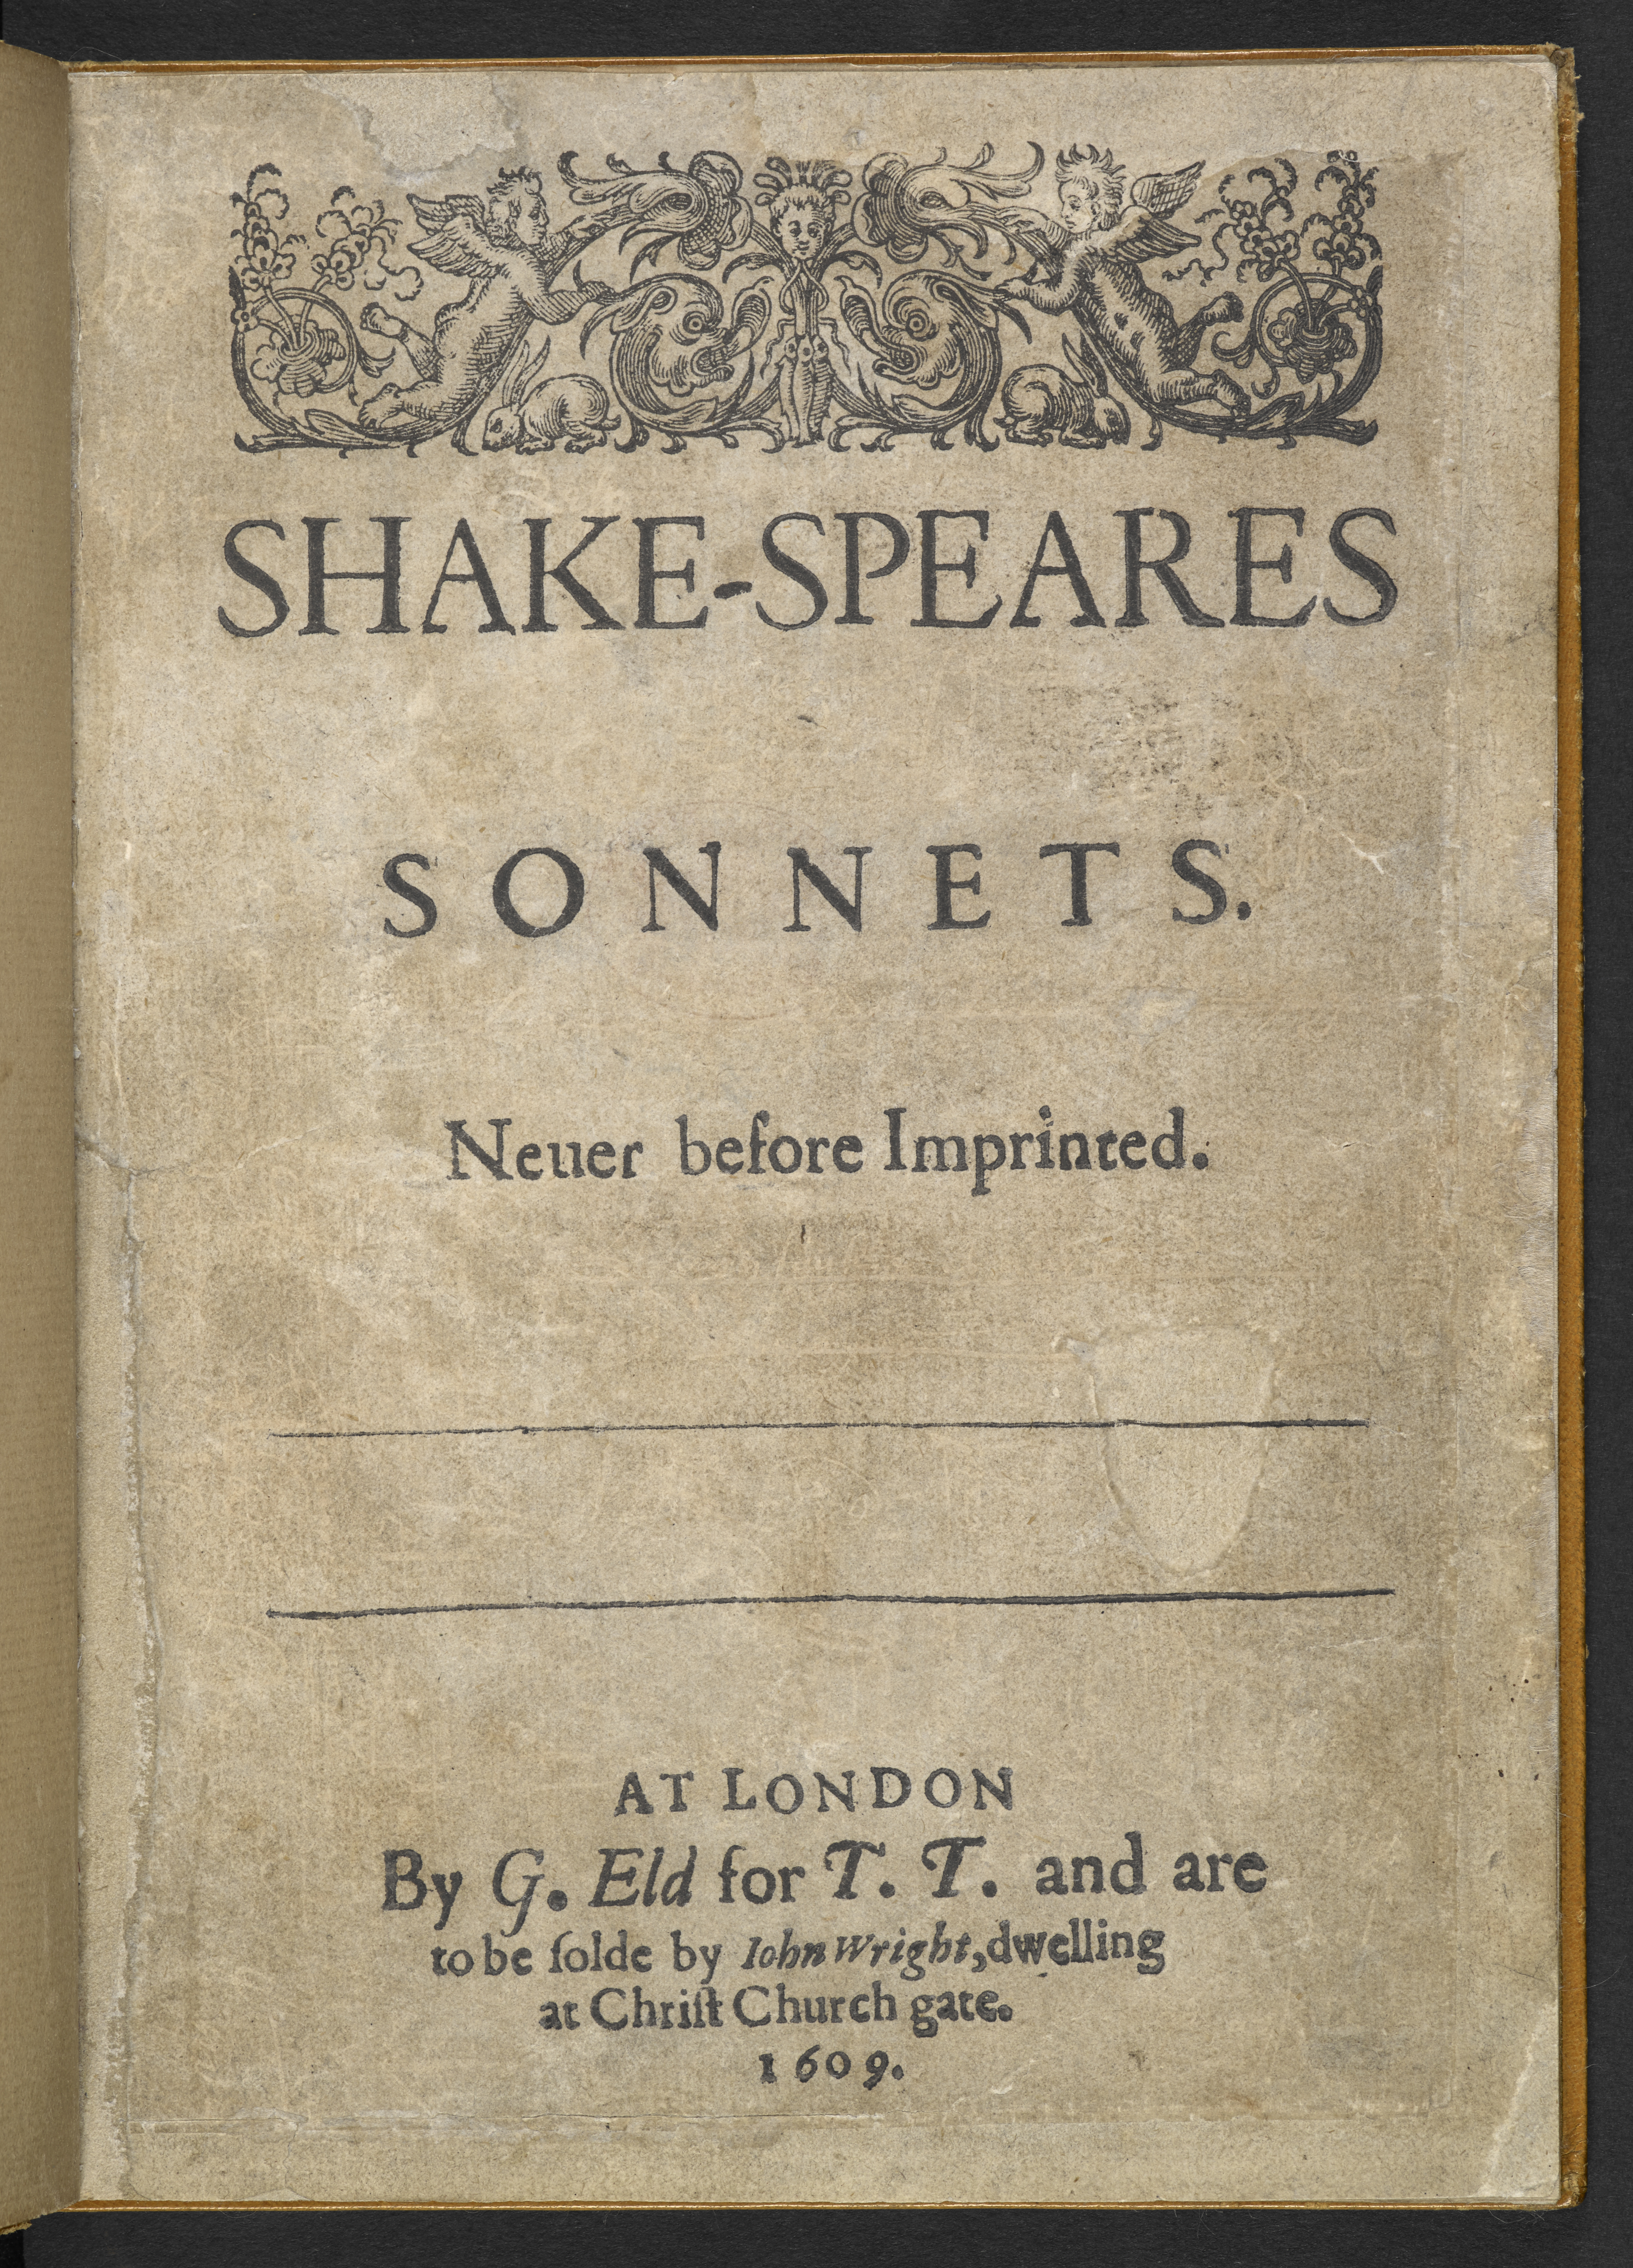 Beyond Shakespeare's Sonnets